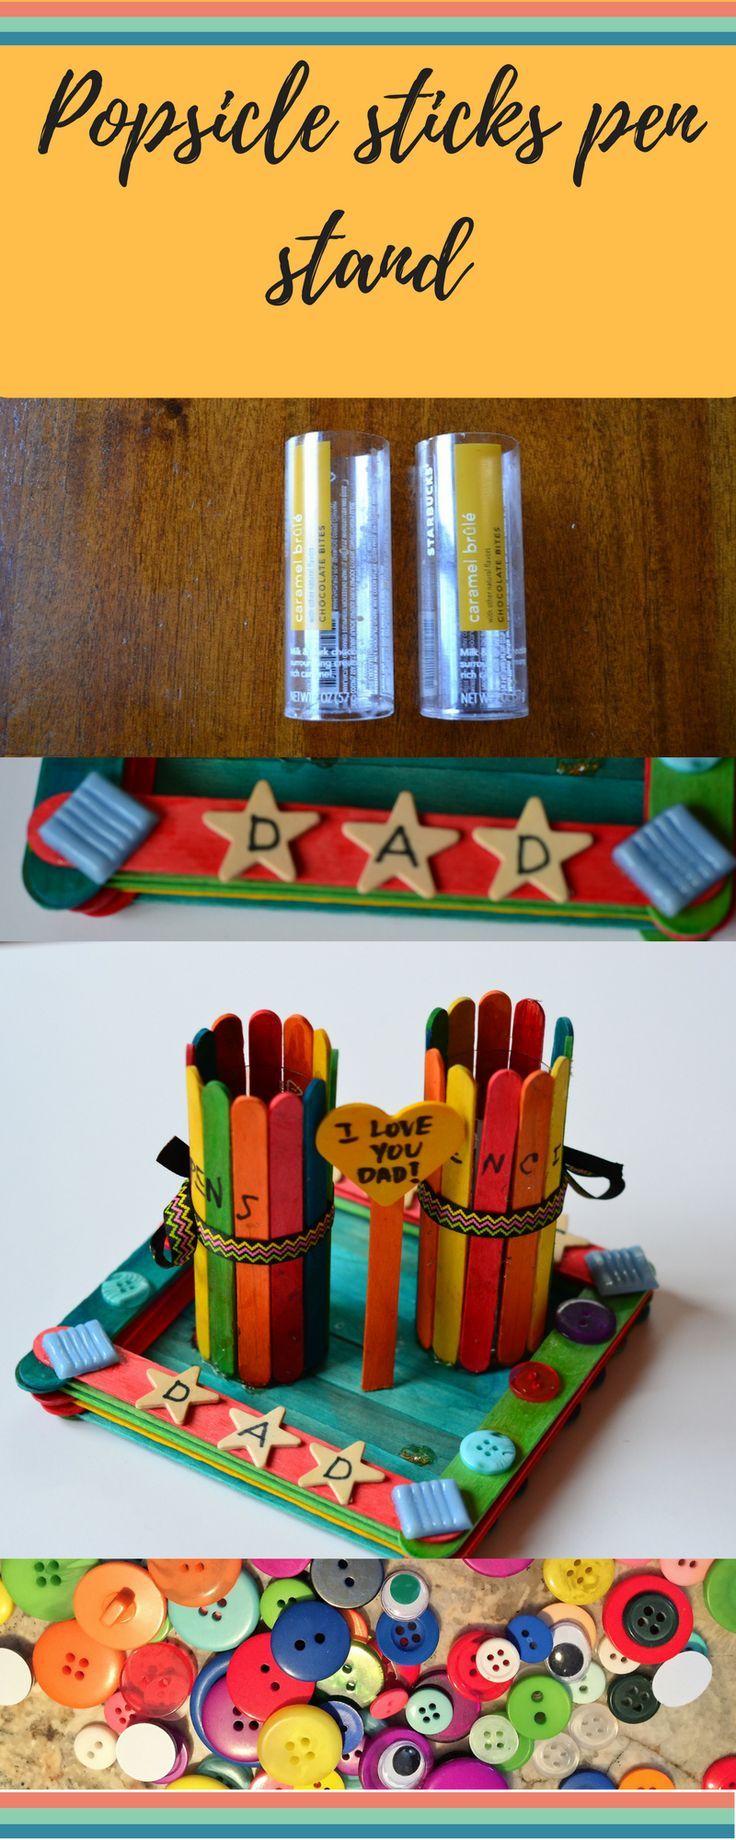 Pen Stand using Popsicle sticks and Starbucks chocolate tins! kids crafts, crafts for kids, crafts, DIY, popsicle stick craft